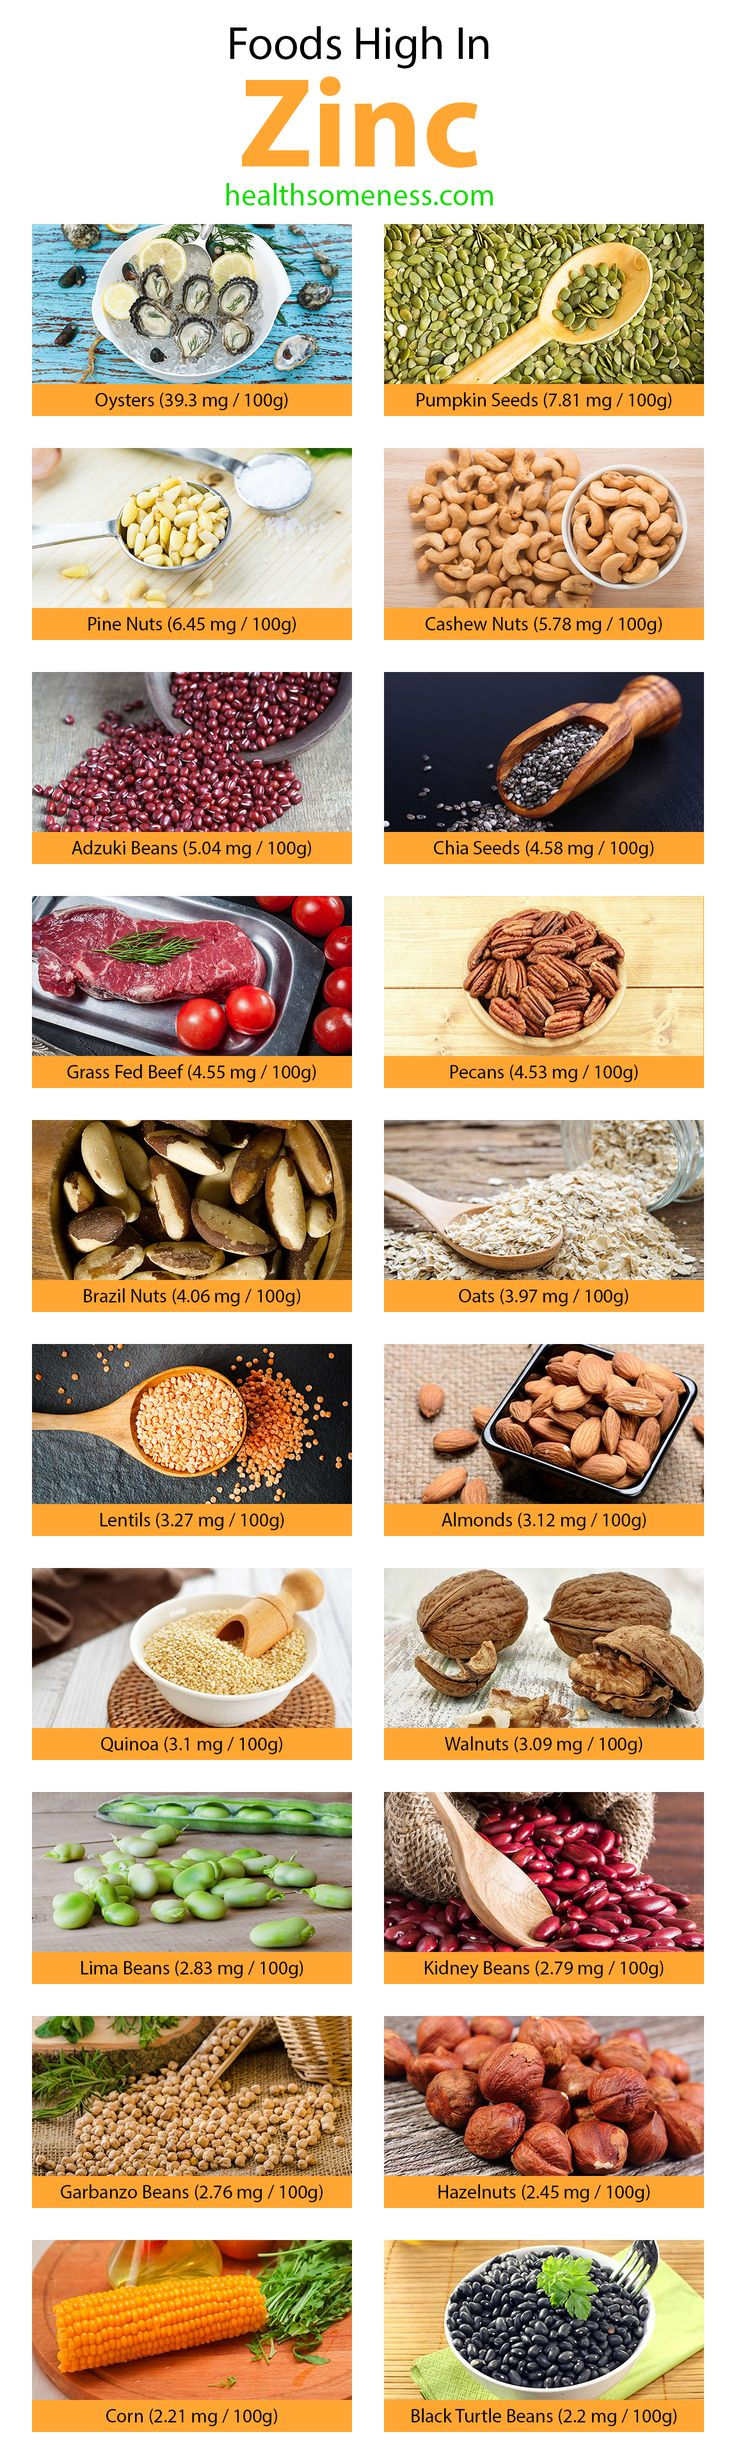 The top 20 foods highest in Zinc. Click on the image to discover 50+ healthy zinc rich foods that you should add to your diet today!